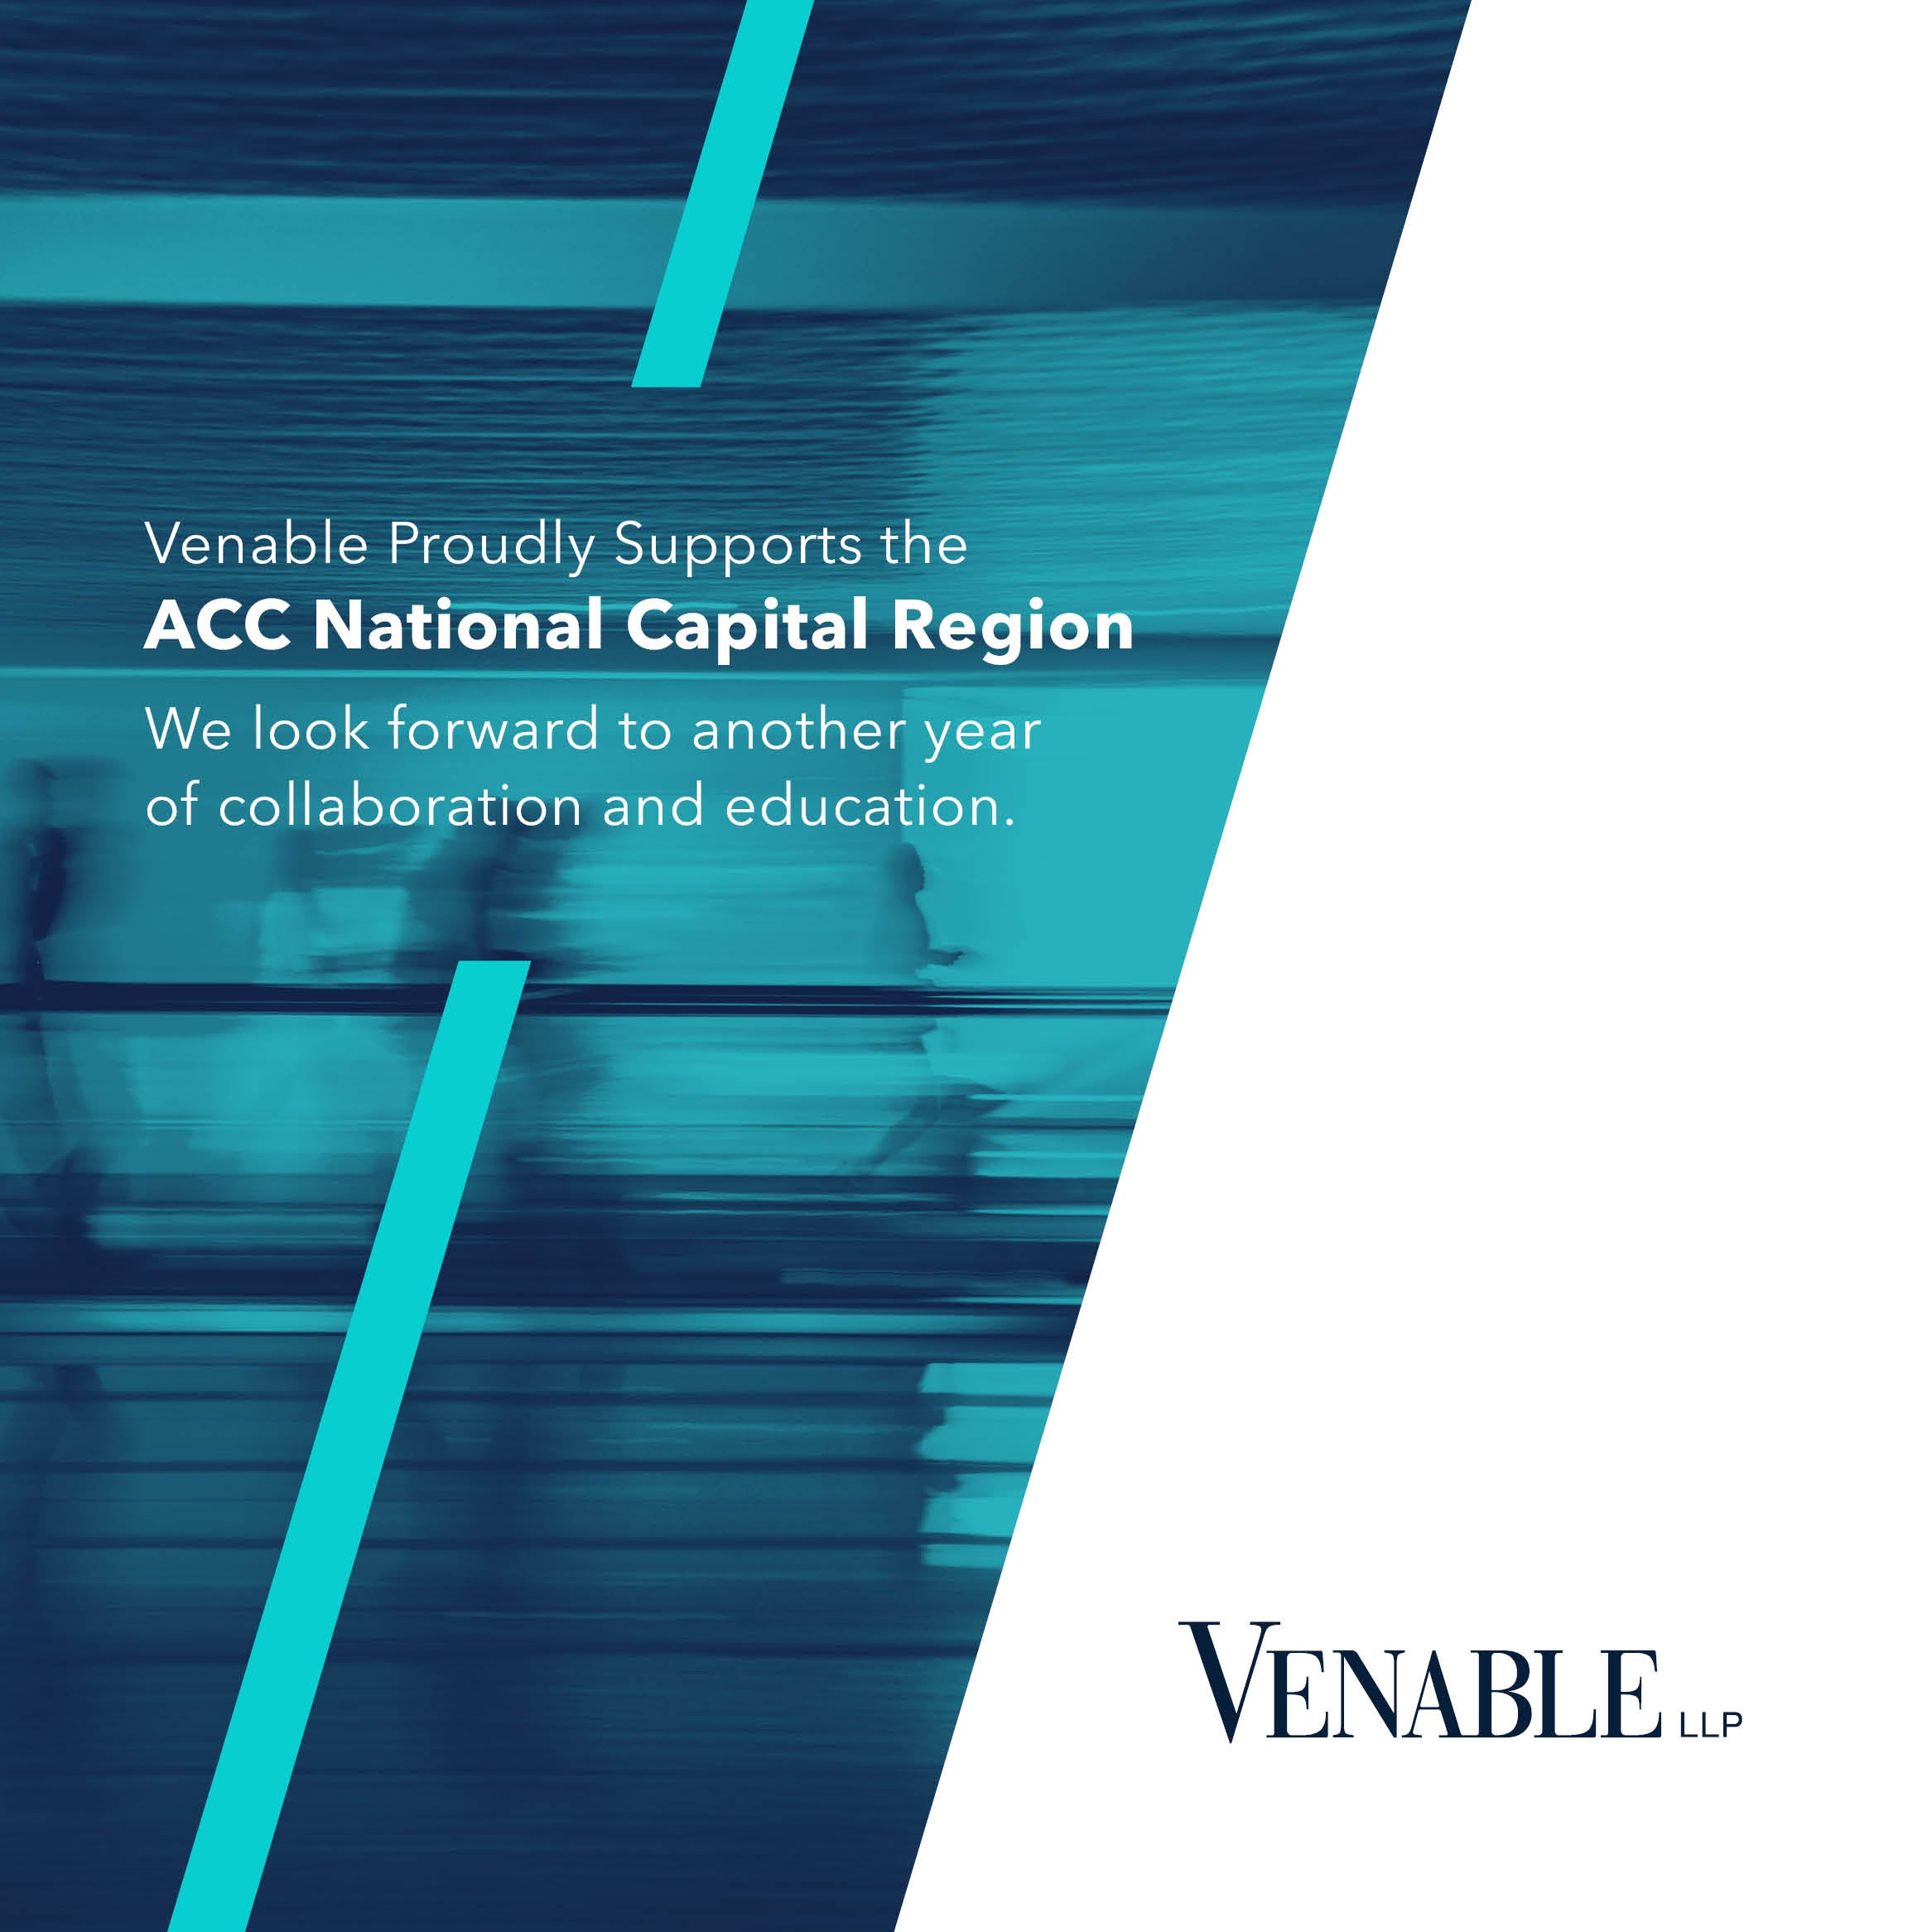 Venable ACC NCR Ad